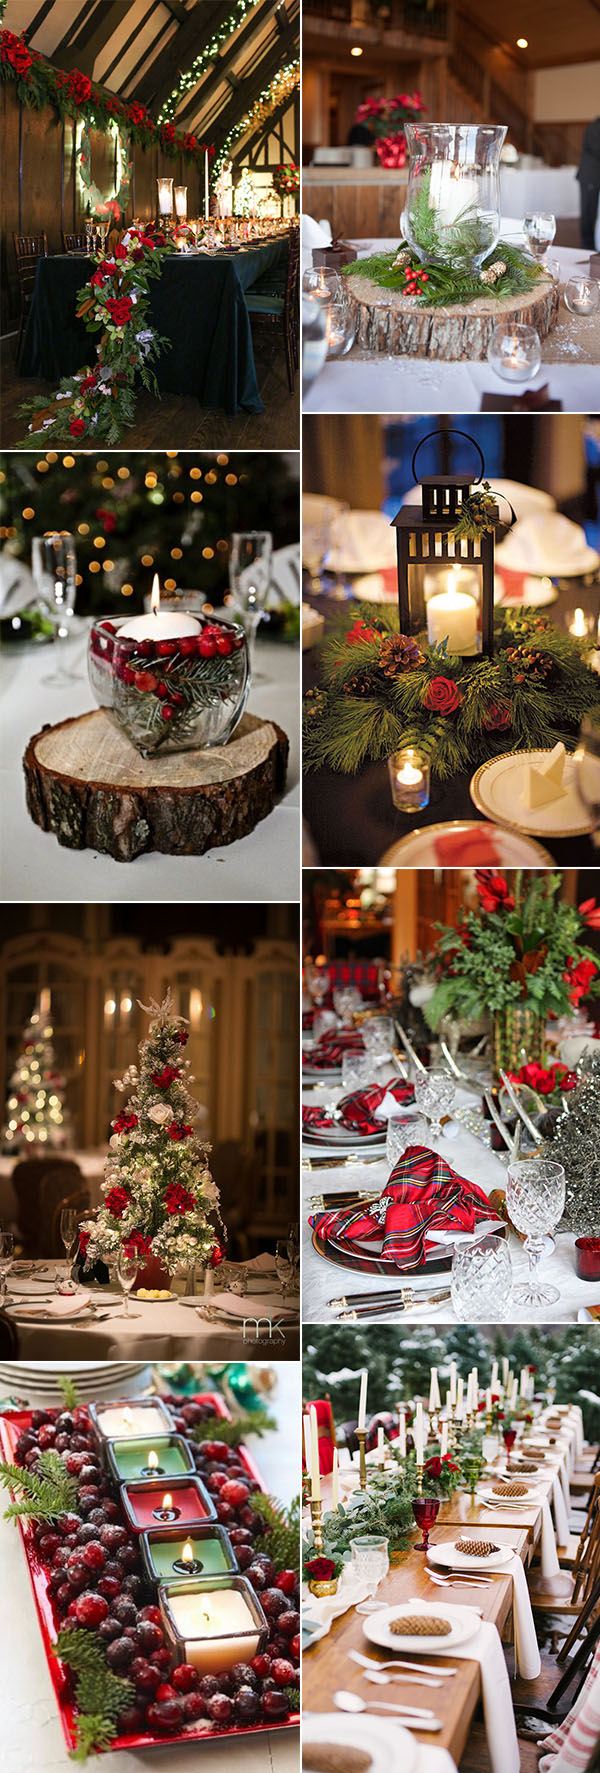 fabulous winter christmas festival wedding centerpieces ideas